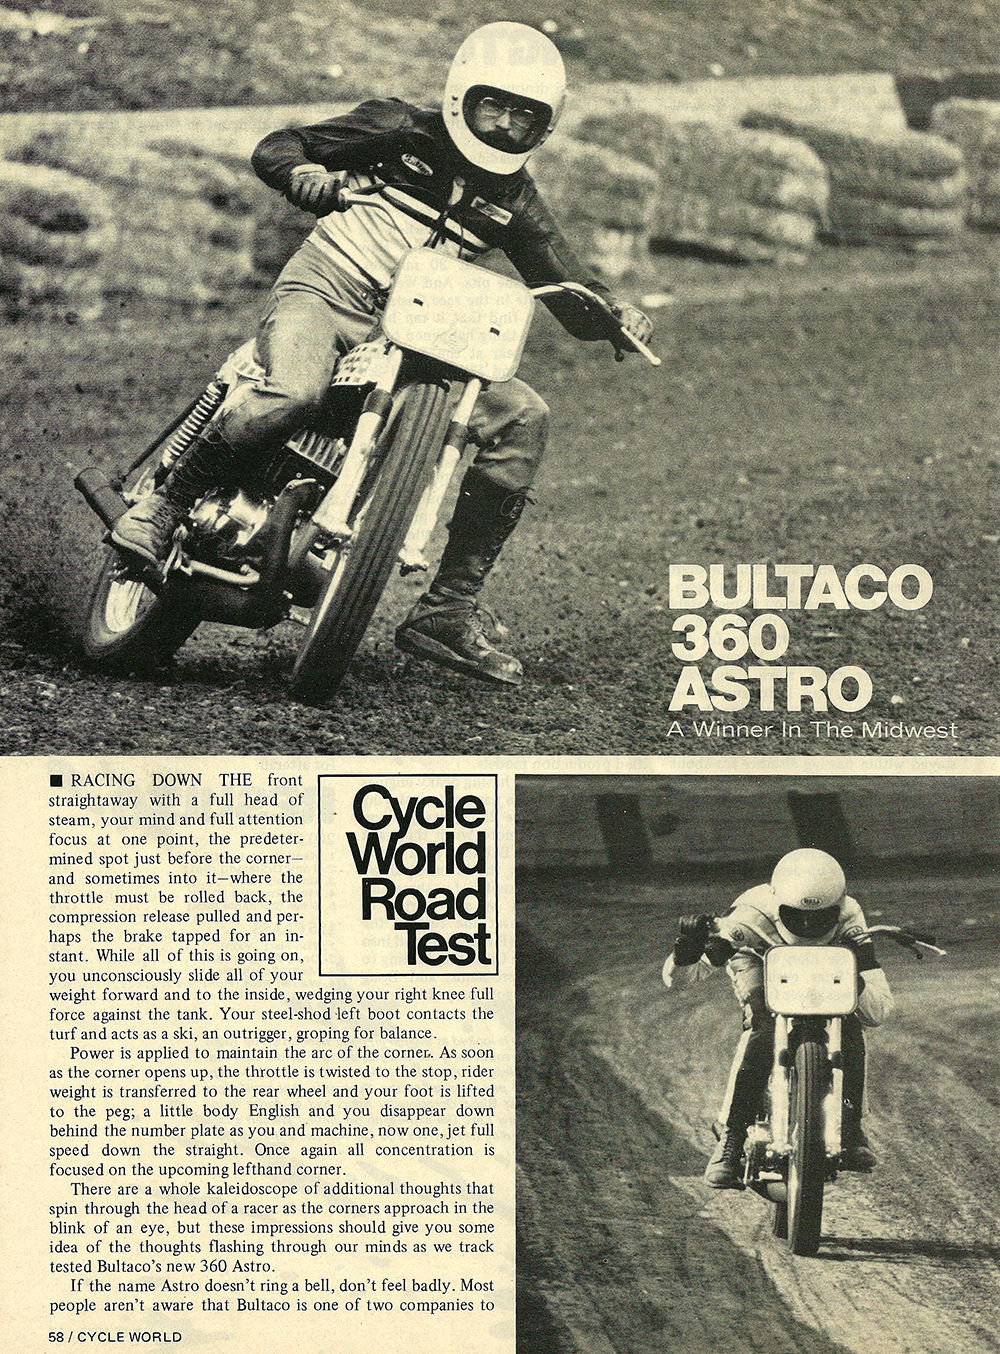 1975 Bultaco 360 Astro road test 01.jpg